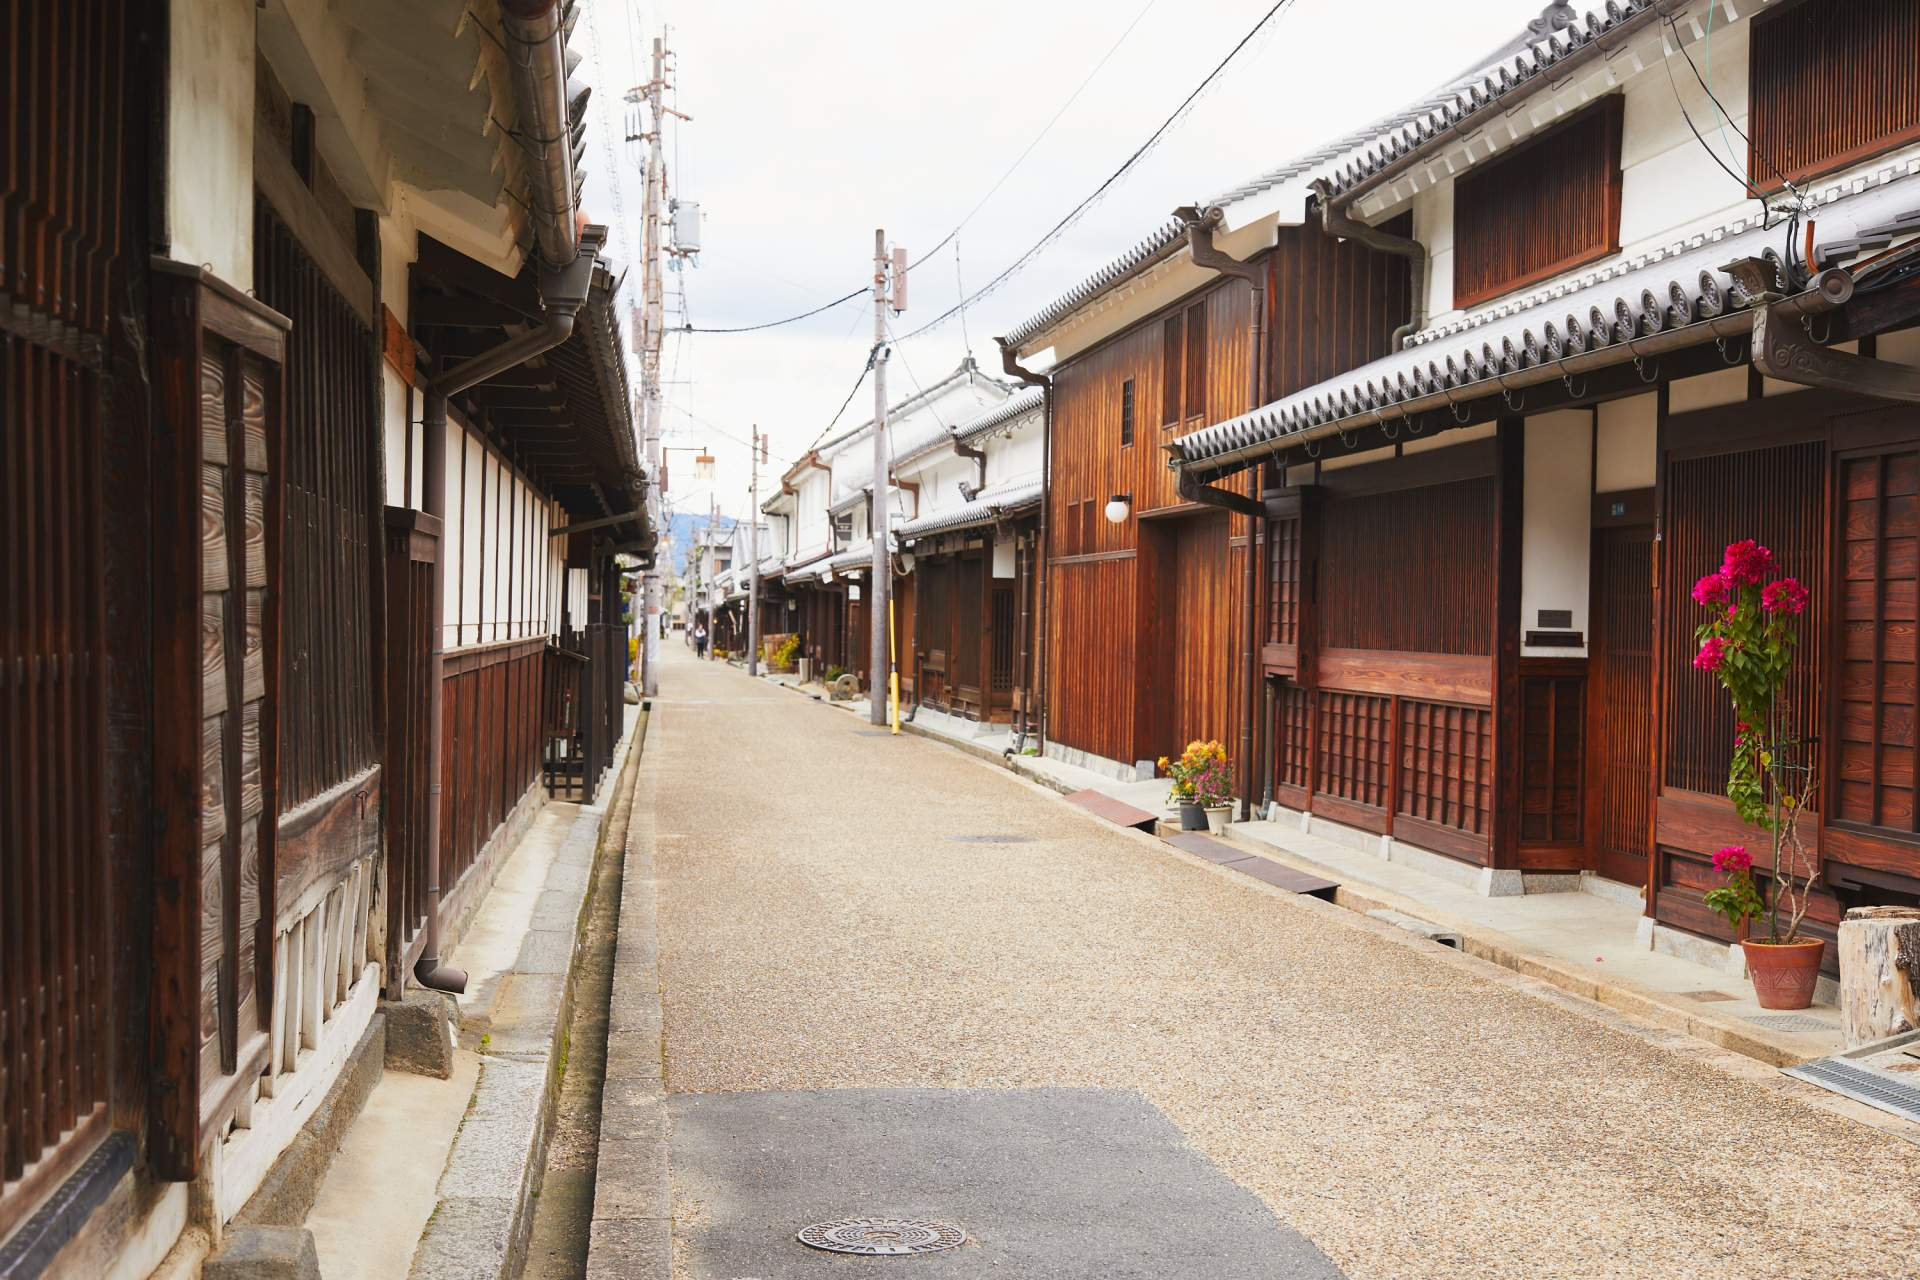 The streetscape with houses that have dignified architecture has been used in the filming of samurai period dramas.